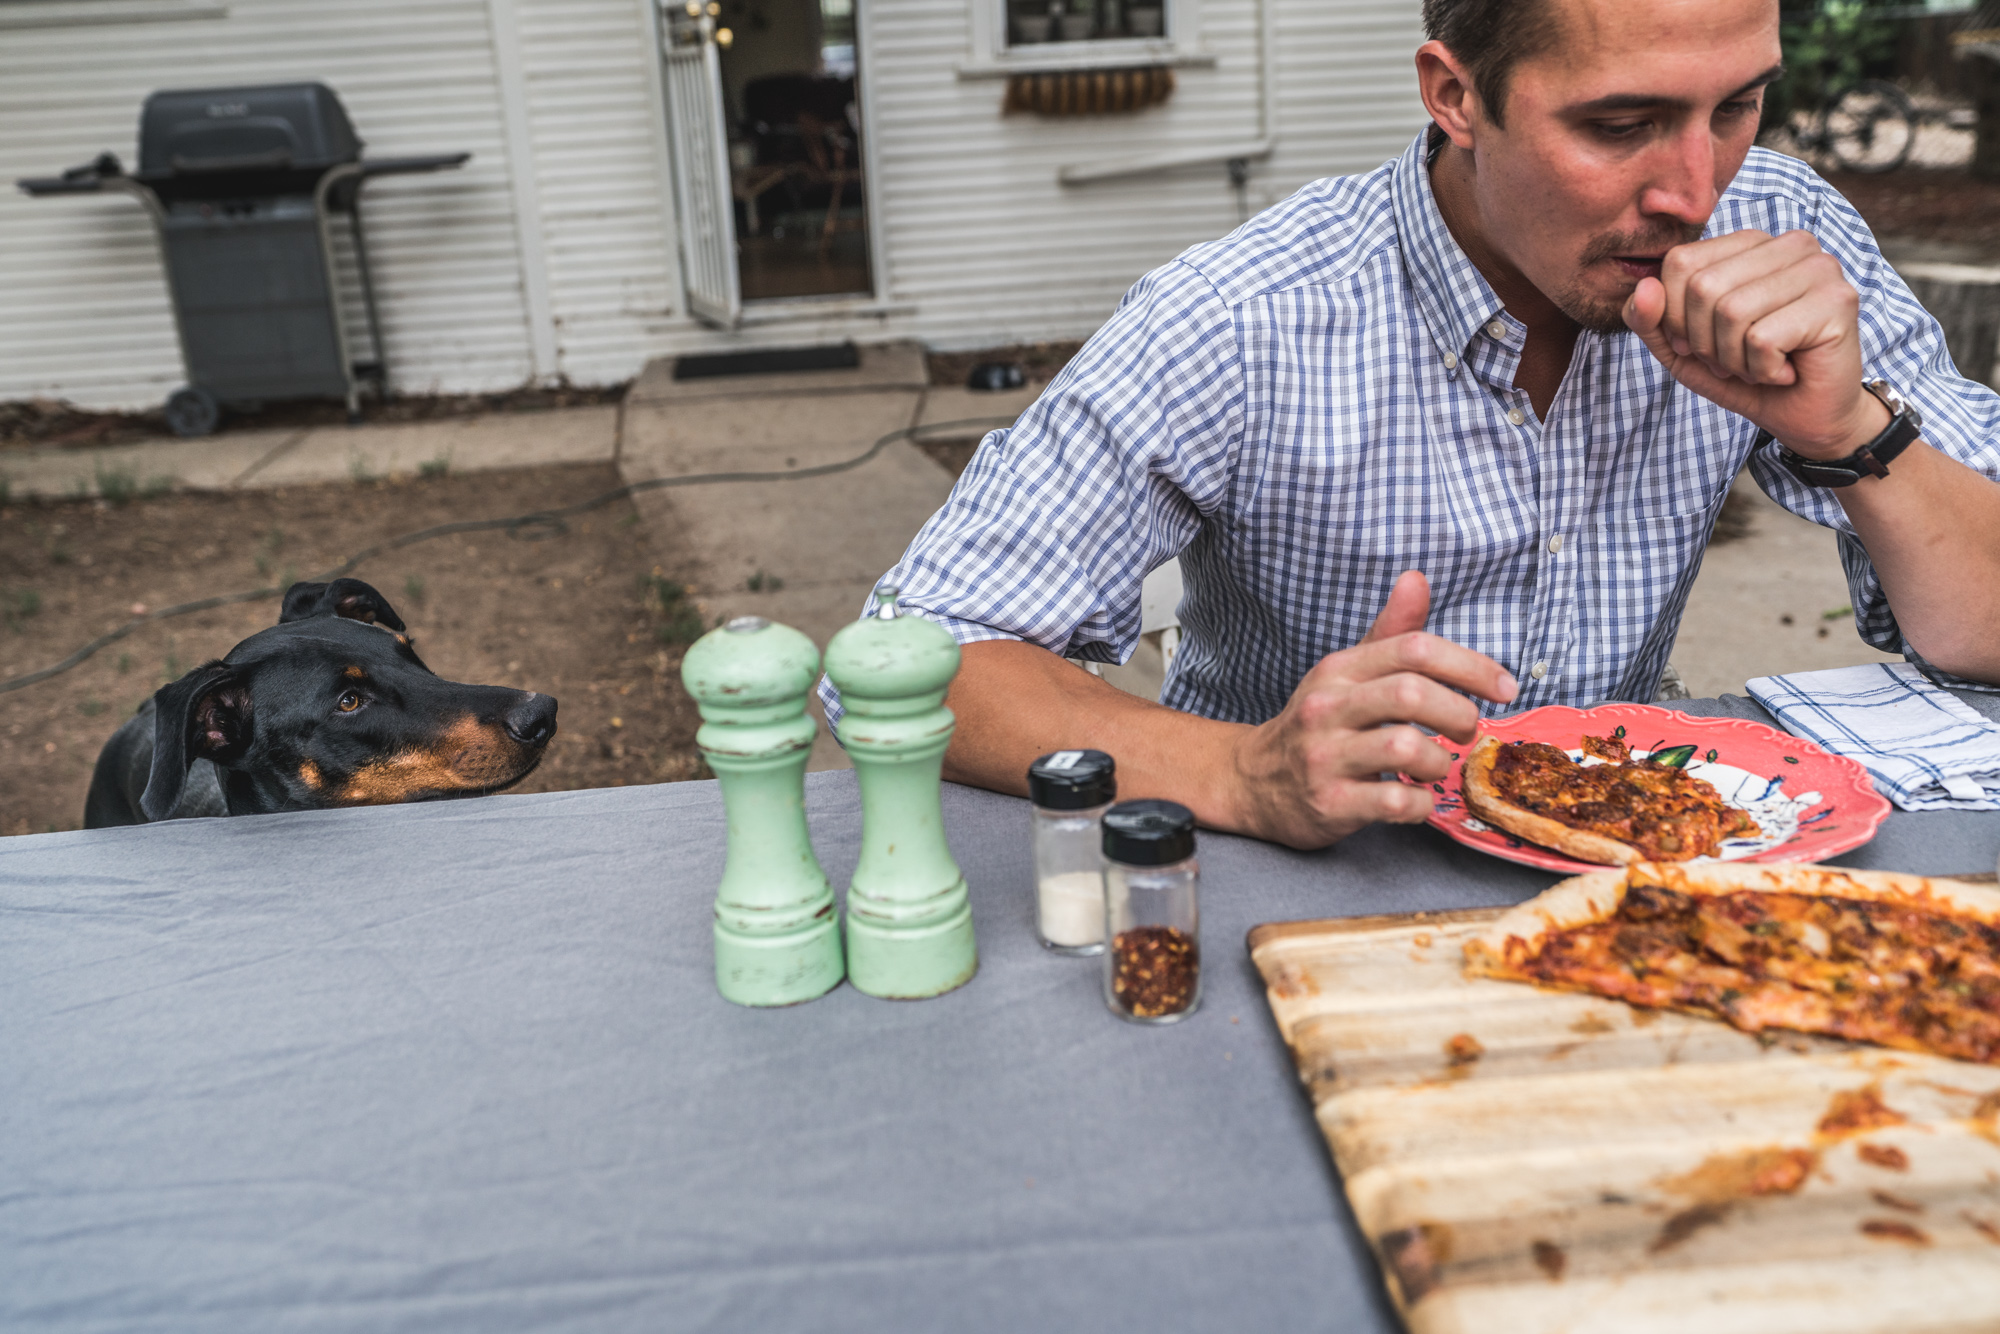 Man sitting at an outside table coughs after eating spicy pizza as his dog watches on